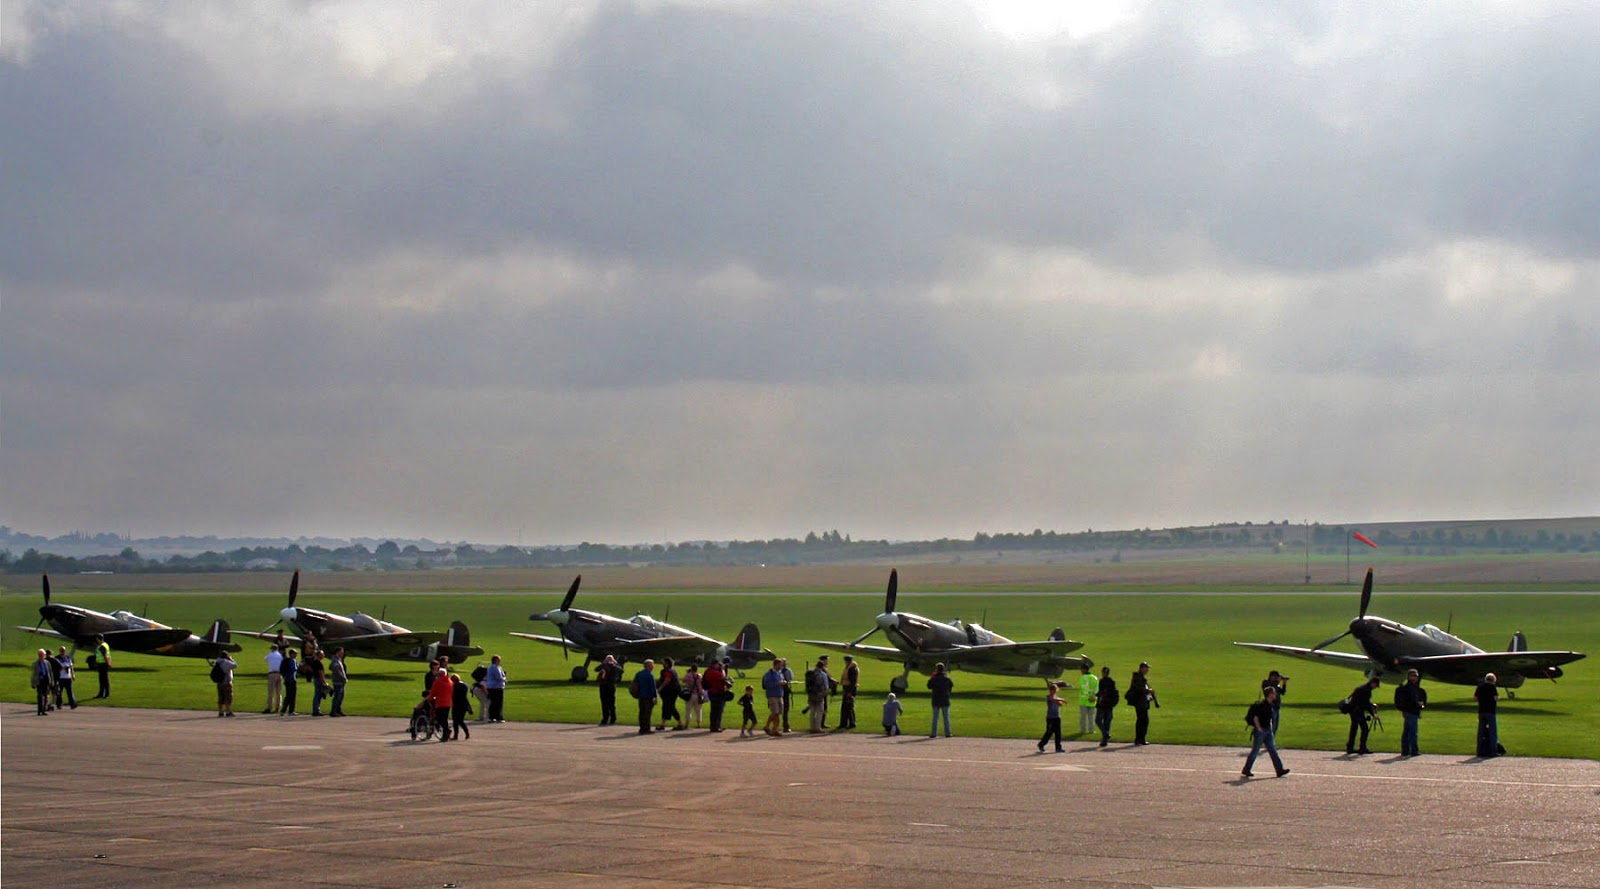 Duxford Airshow September 14th 2014 - Line up of spitfires